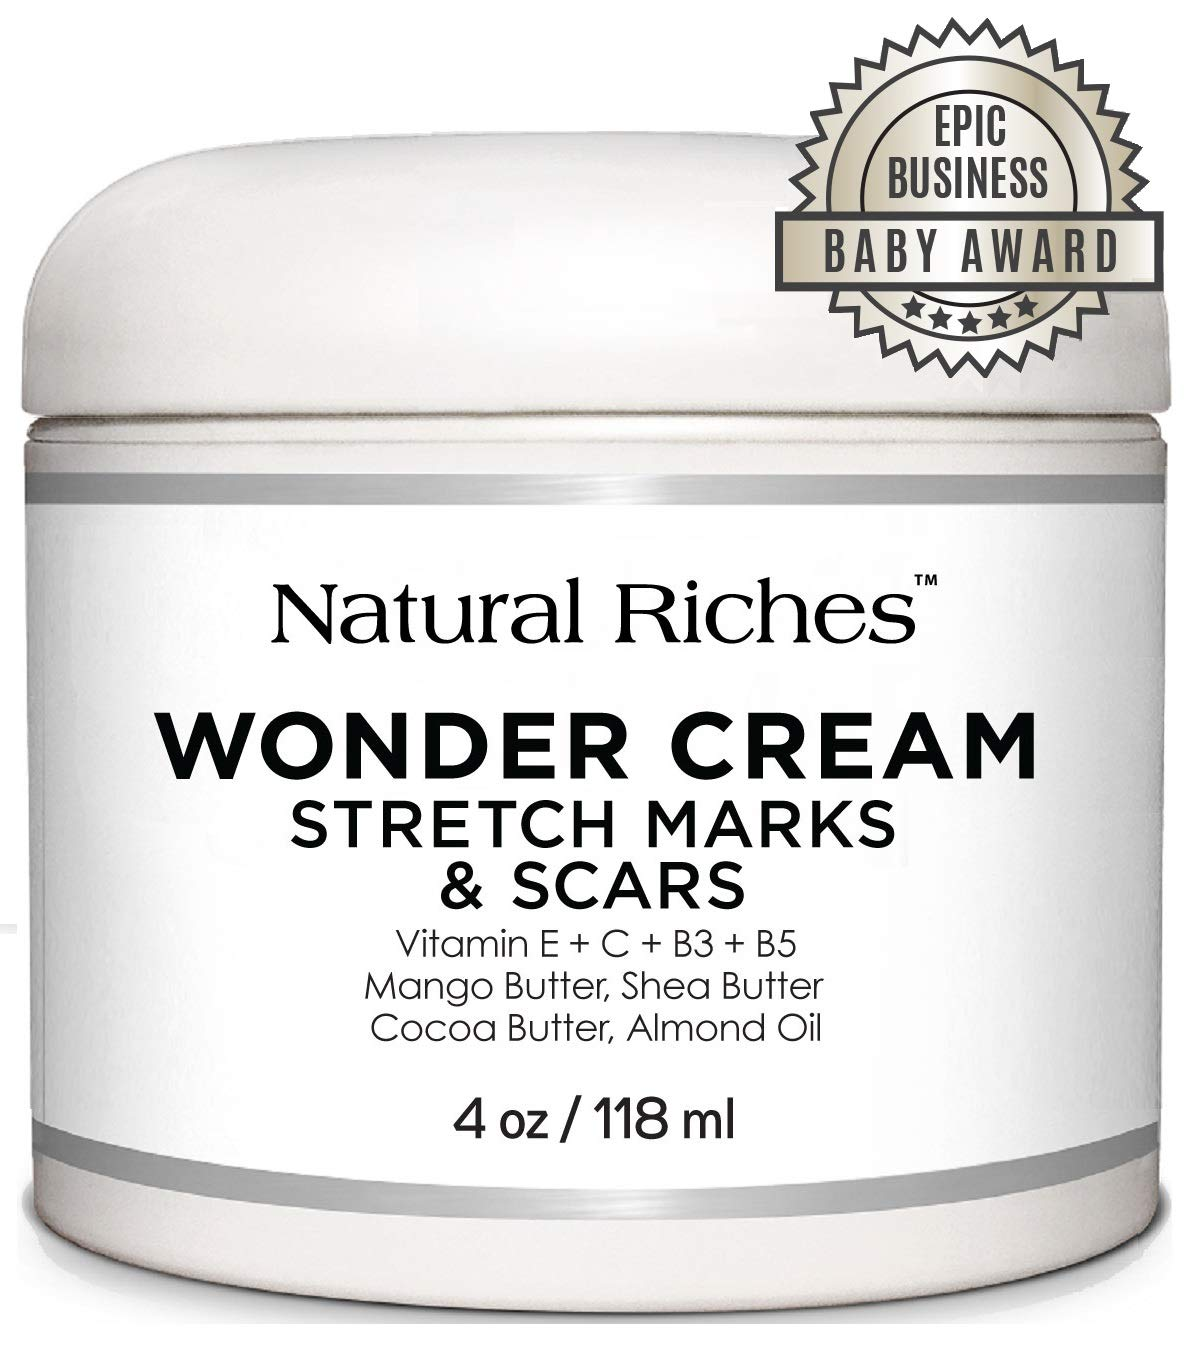 Stretch Marks & Scar Removal Cream, from Natural Riches - 4 oz - 100% Natural, Reduces the Appearances of Keloids, Pregnancy Stretch Marks and scars, helps in Firming & Tightening Skin by Natural Riches